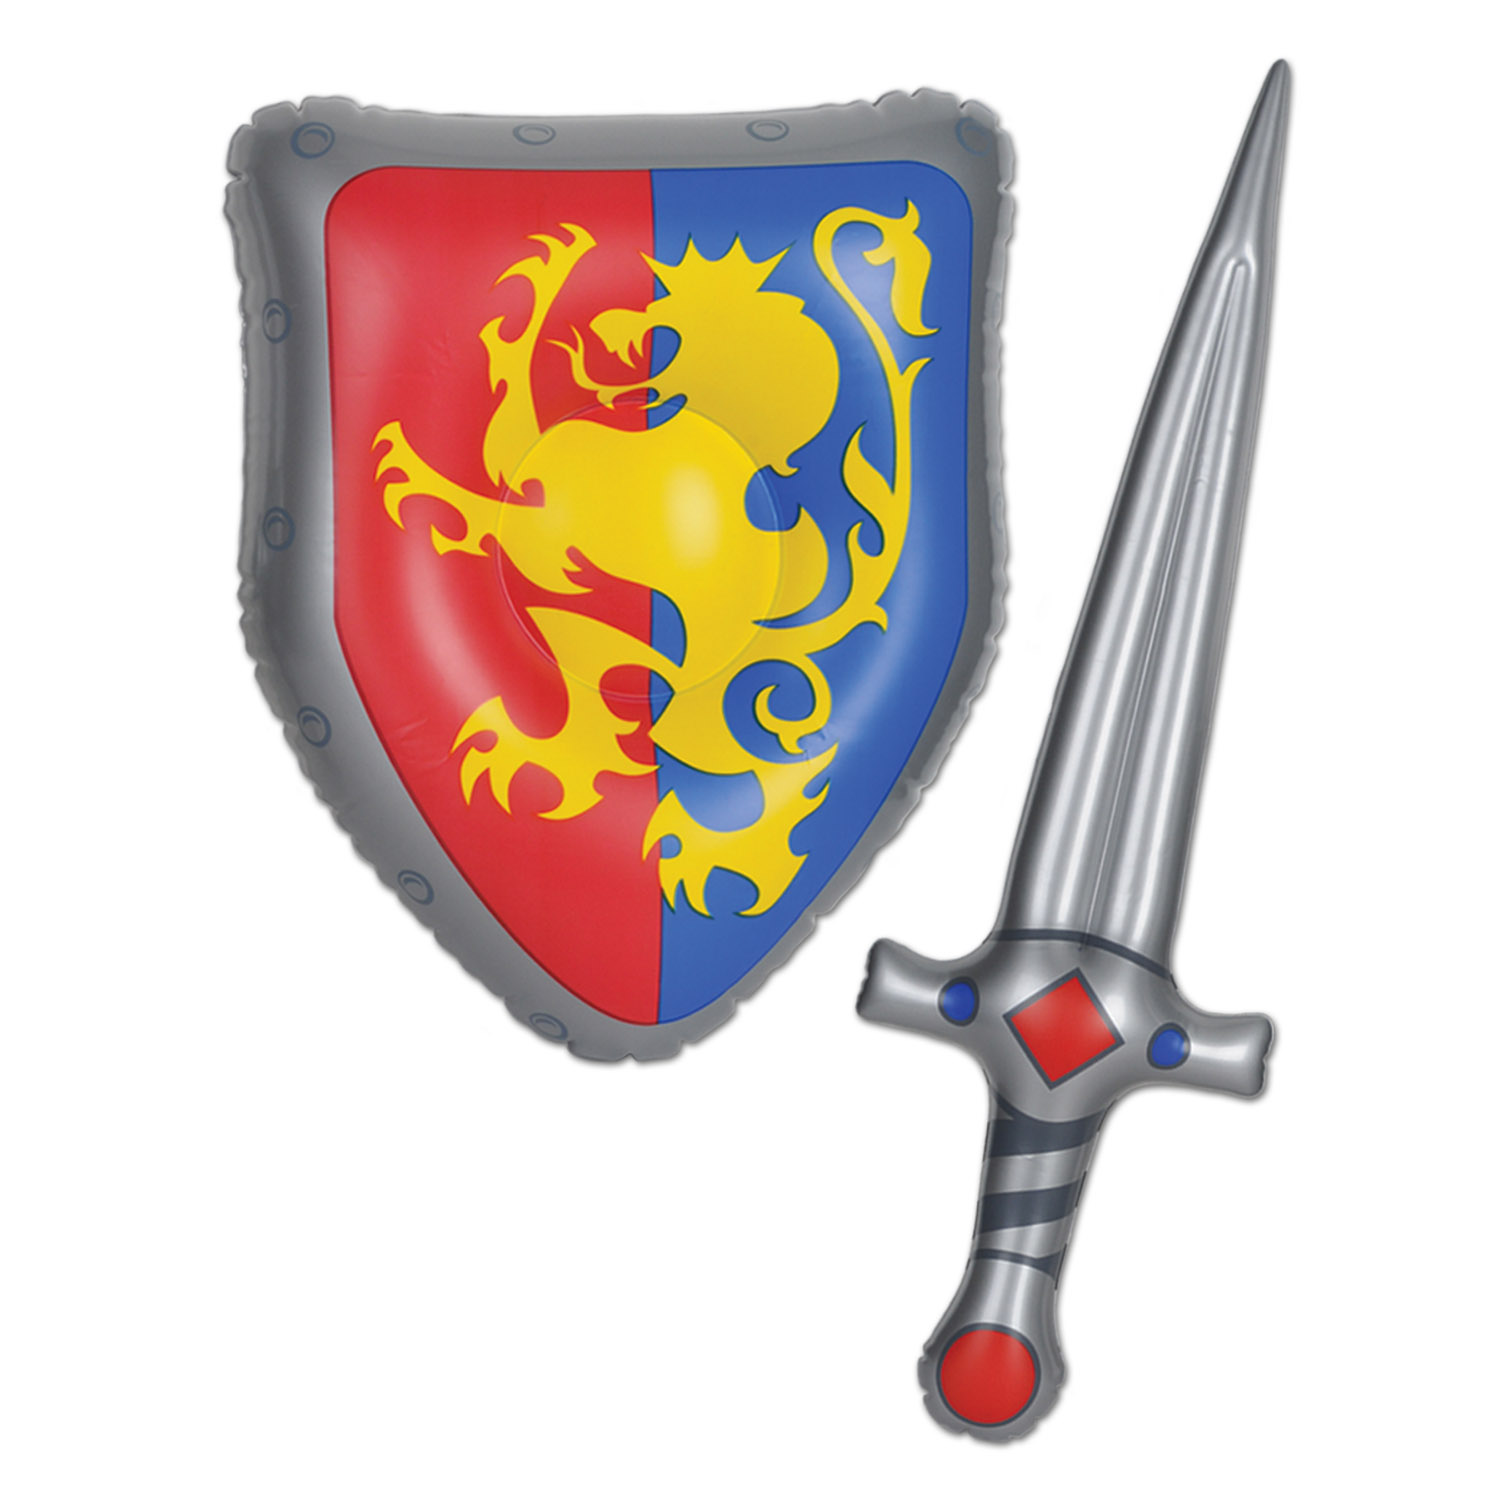 Inflatable Sword & Shield Set (Pack of 6) Knights, dragons, sword, shield, fair maden, medieval